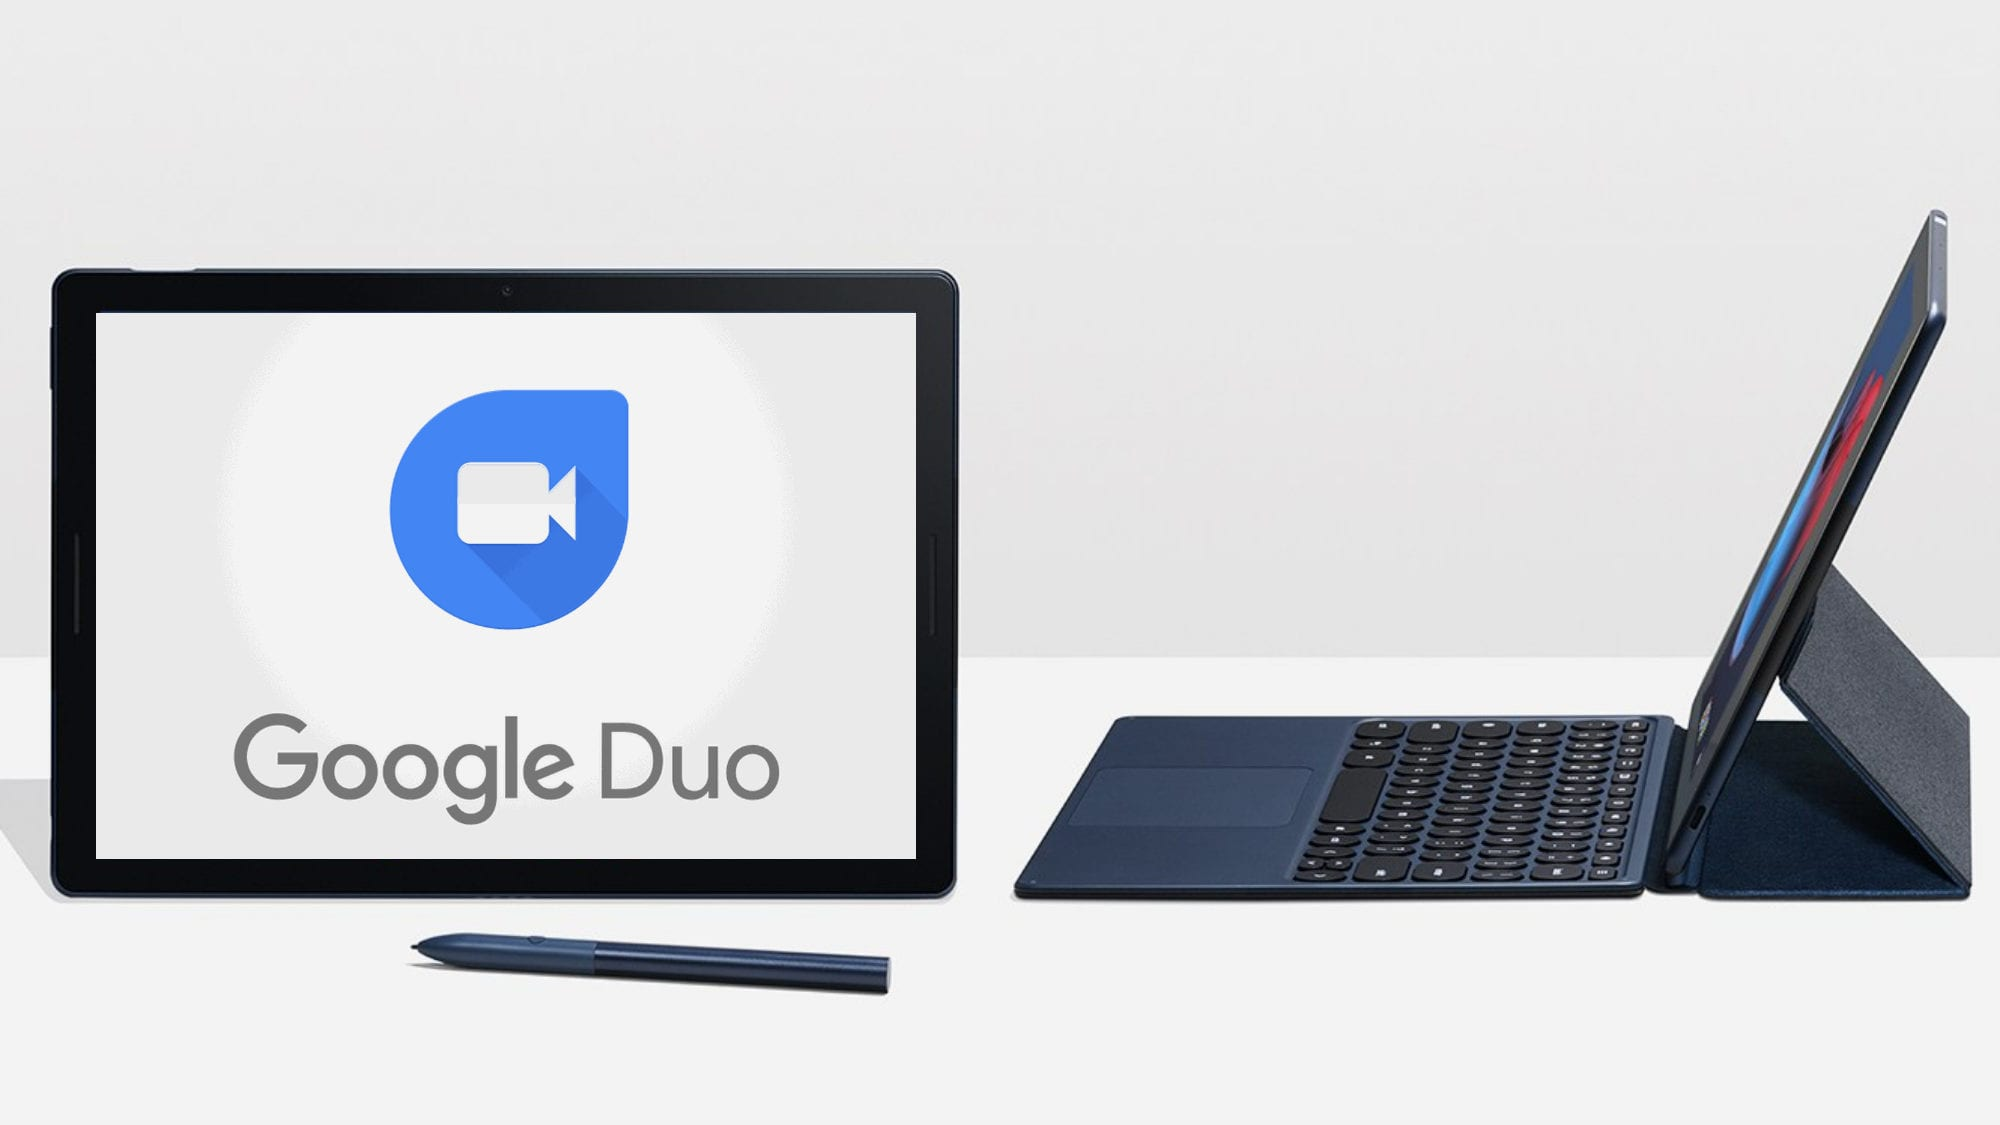 Google's Duo can now be used on tablets and Chromebooks without a phone number